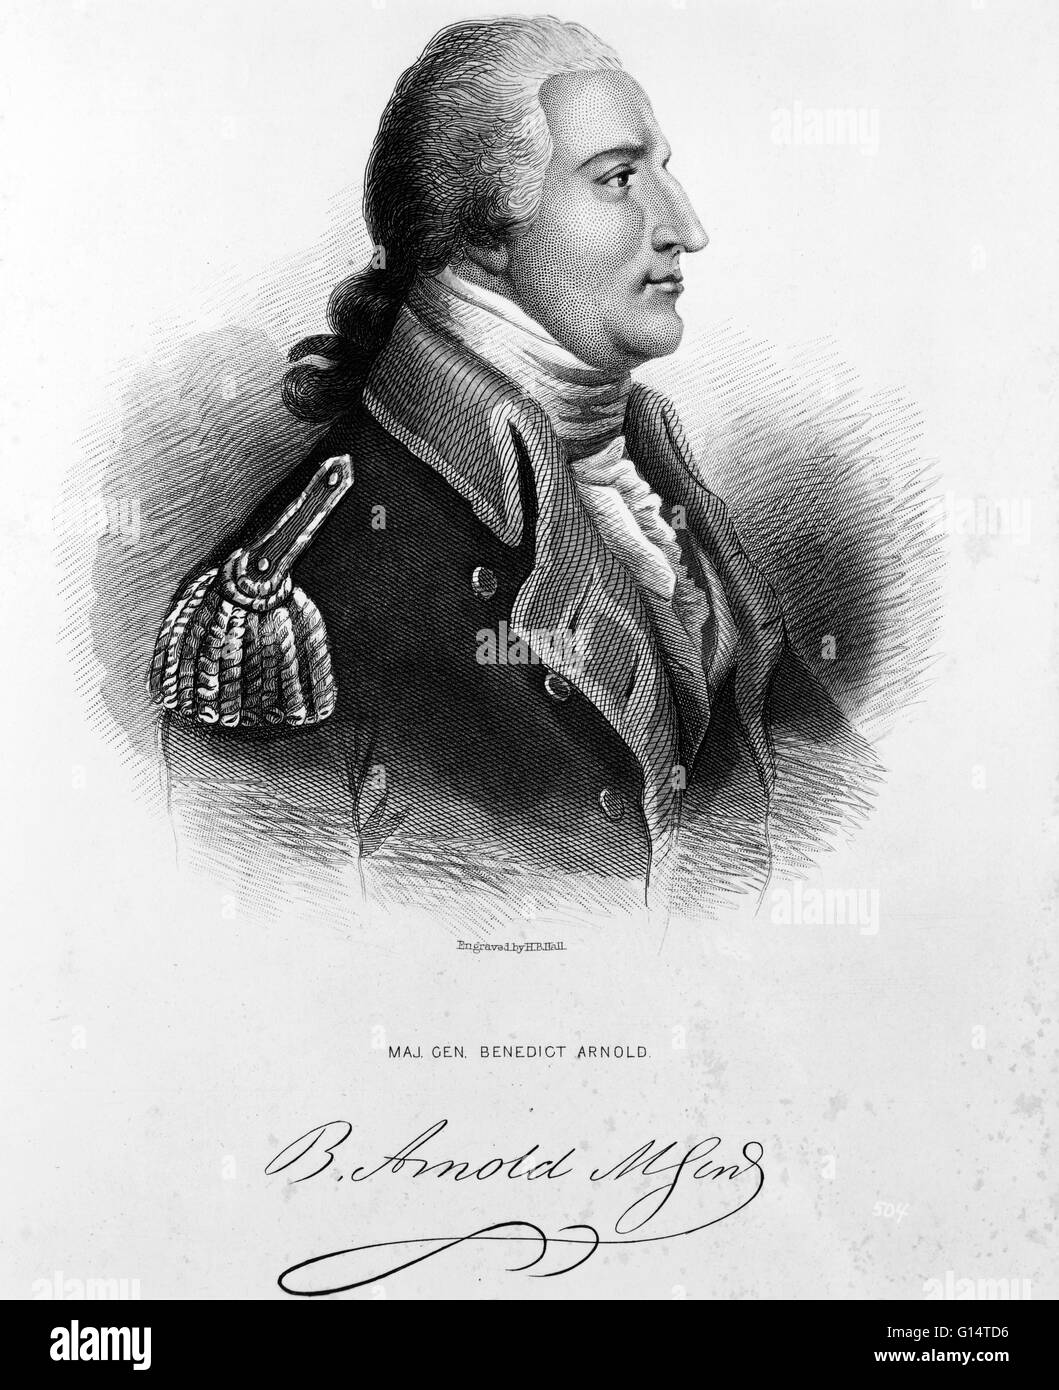 the contributions of benedict arnold to the american revolution Benedict arnold v was a general during the american revolutionary war who originally fought for the american continental army but switched sides to the british empire while he was still a general on the american side, he obtained command of the fort at west point, new york, and plotted unsuccessfully to surrender it to the british.